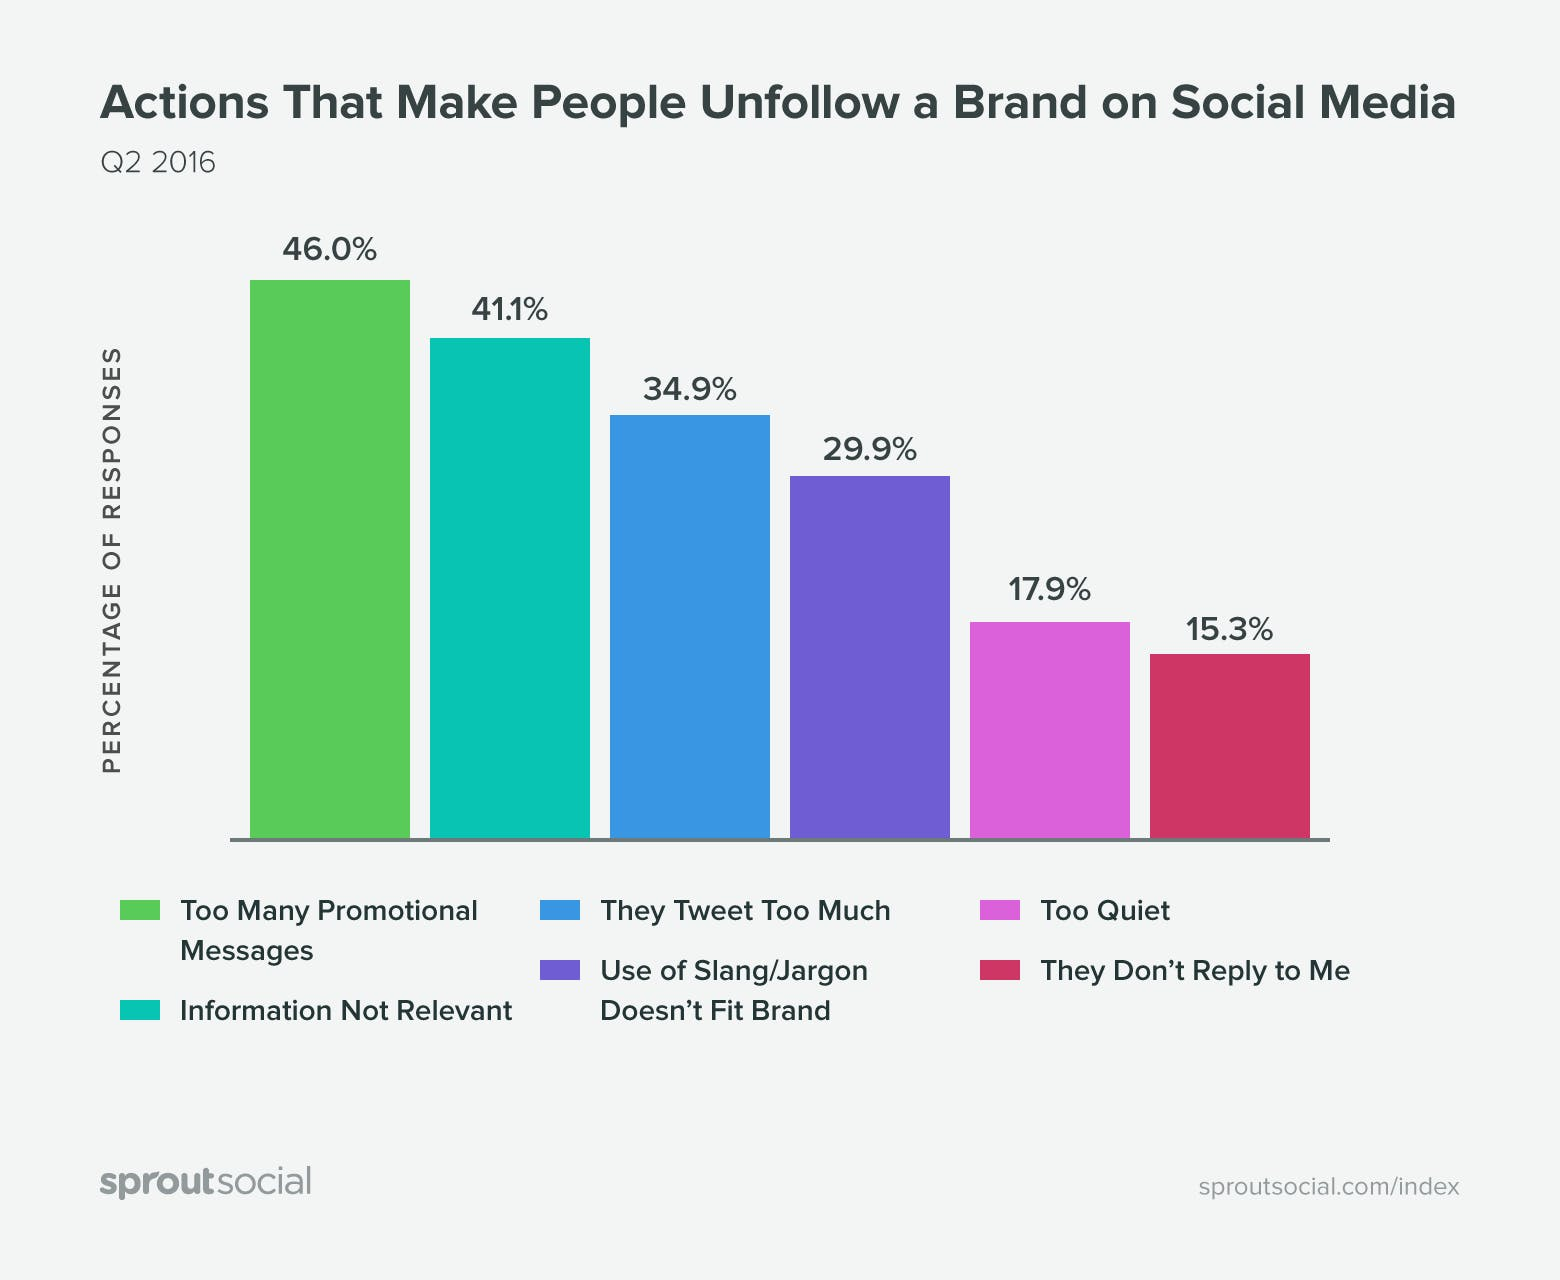 Sprout Social: what makes people unfollow a brand on social media